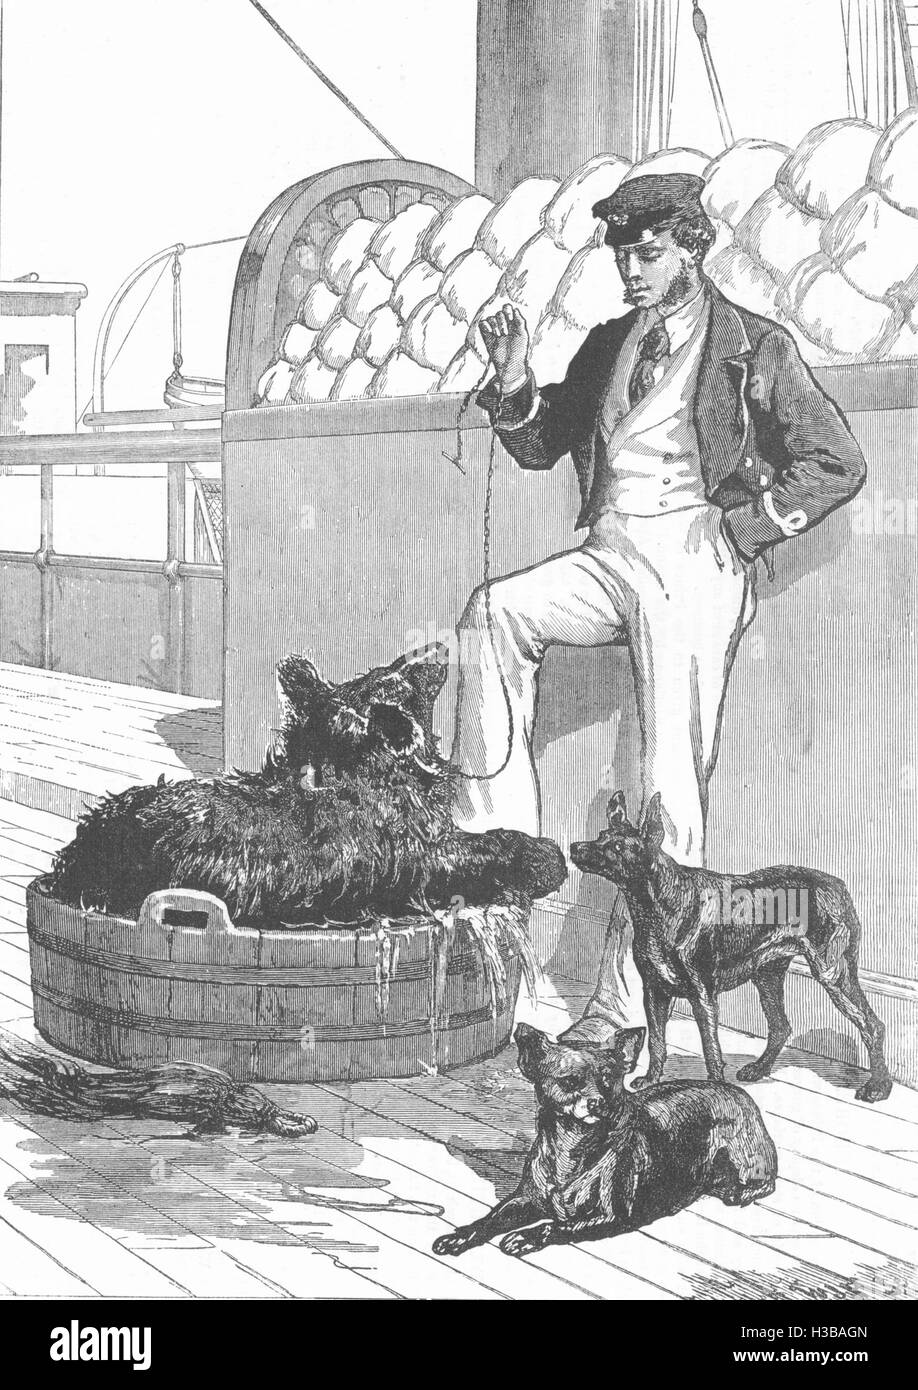 TIBET Himalayan Bear, and Tailless Dogs of Tibet 1876. The Illustrated London News - Stock Image